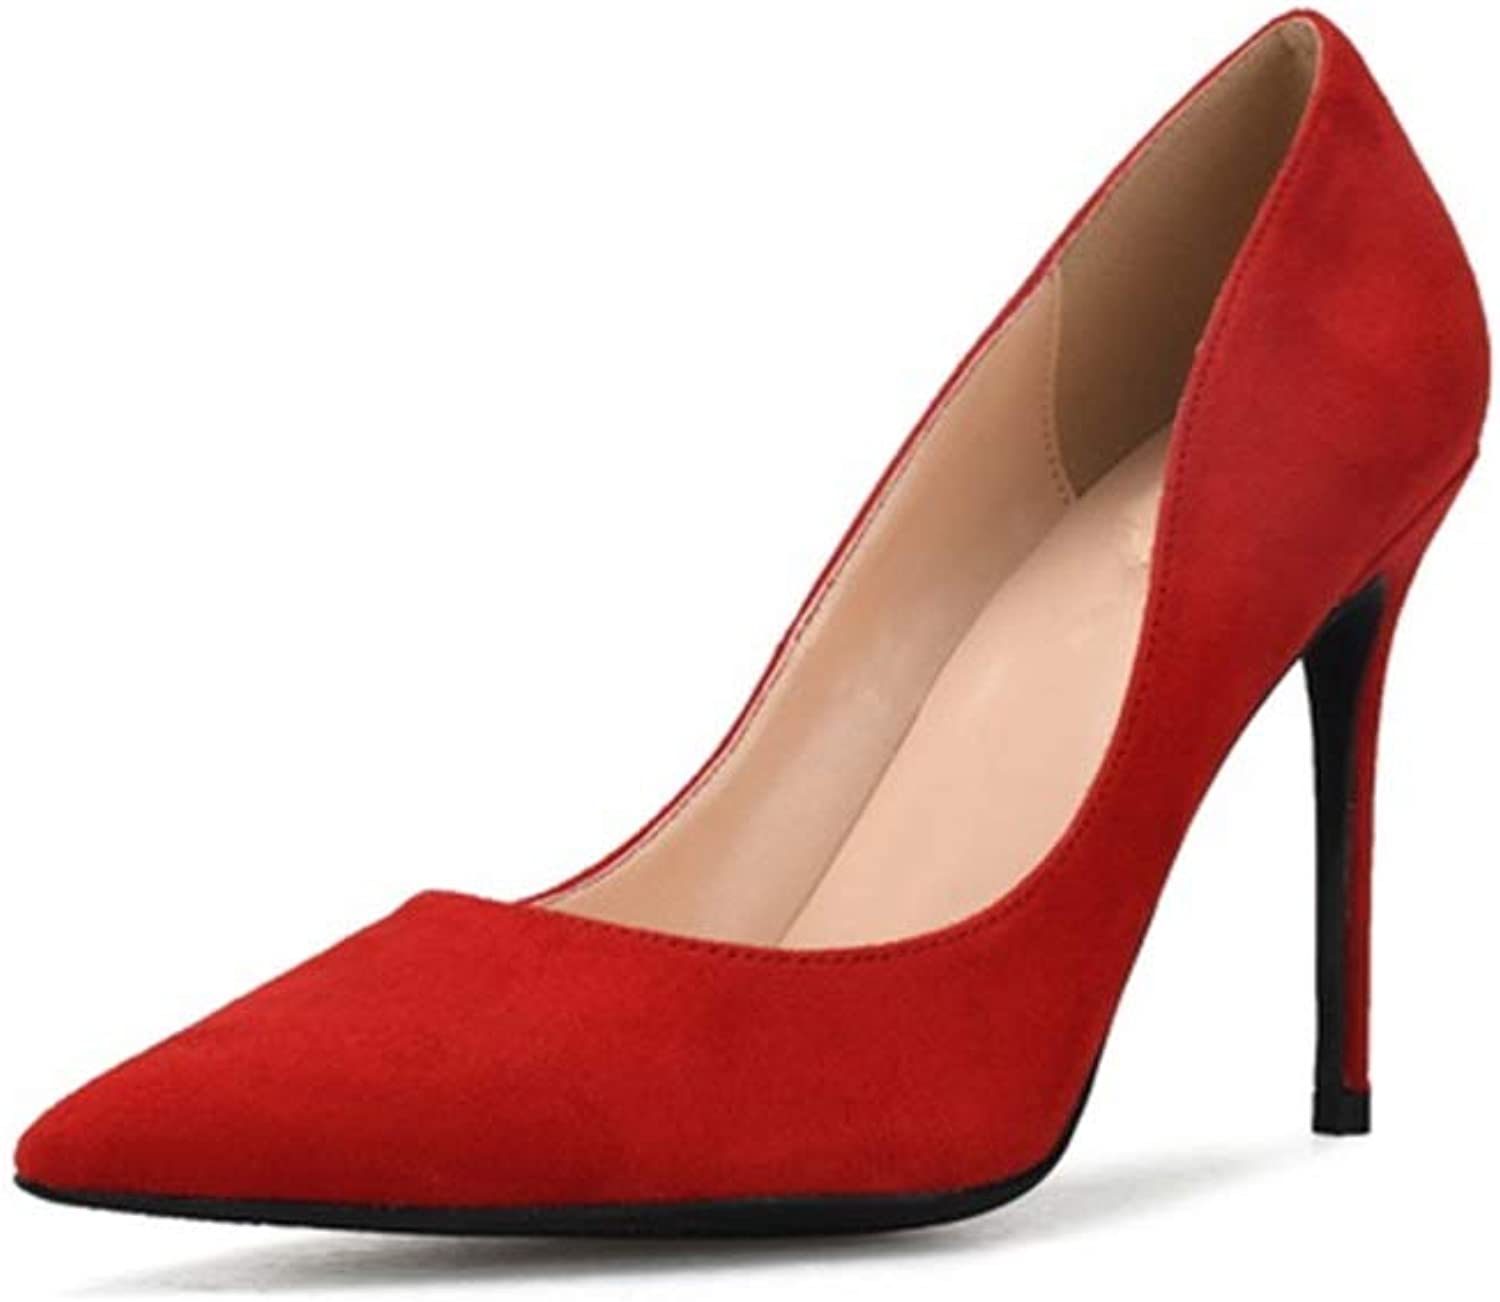 ZerenQ Lady High Stiletto Heels D'Orsay Pumps for Women Faux Suede Leather Pointed Toe Lined Dress shoes Durable (color   Red 6cm Heel, Size   11 M US)